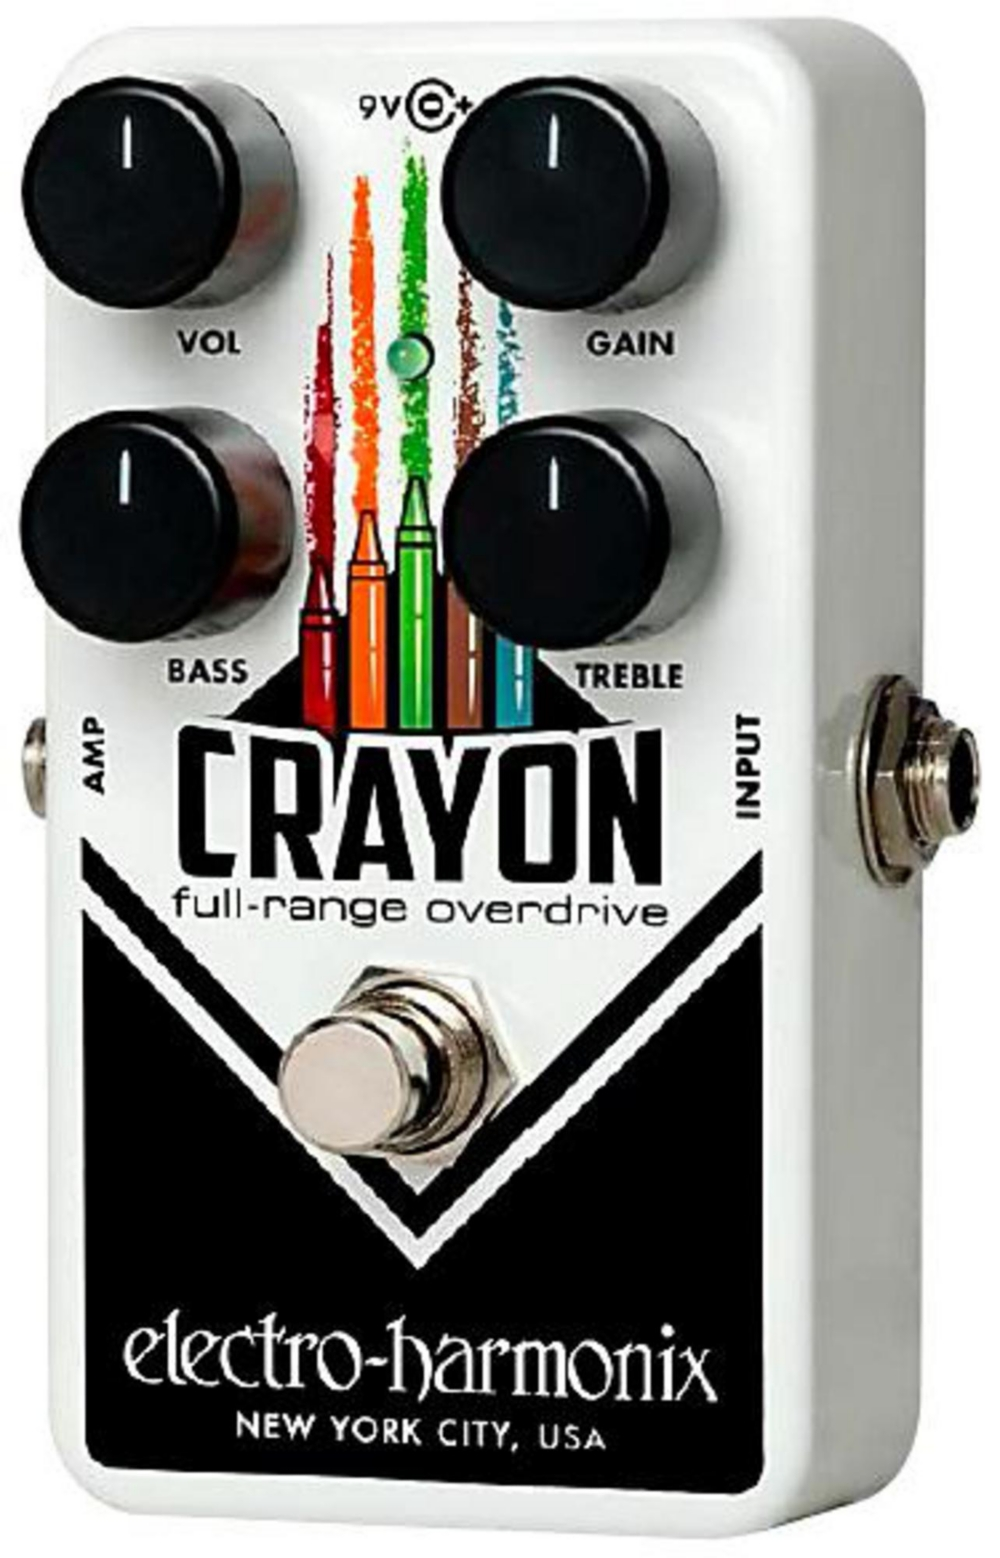 Electro-Harmonix Crayon Distortion Guitar Effect Pedal by Electro-Harmonix